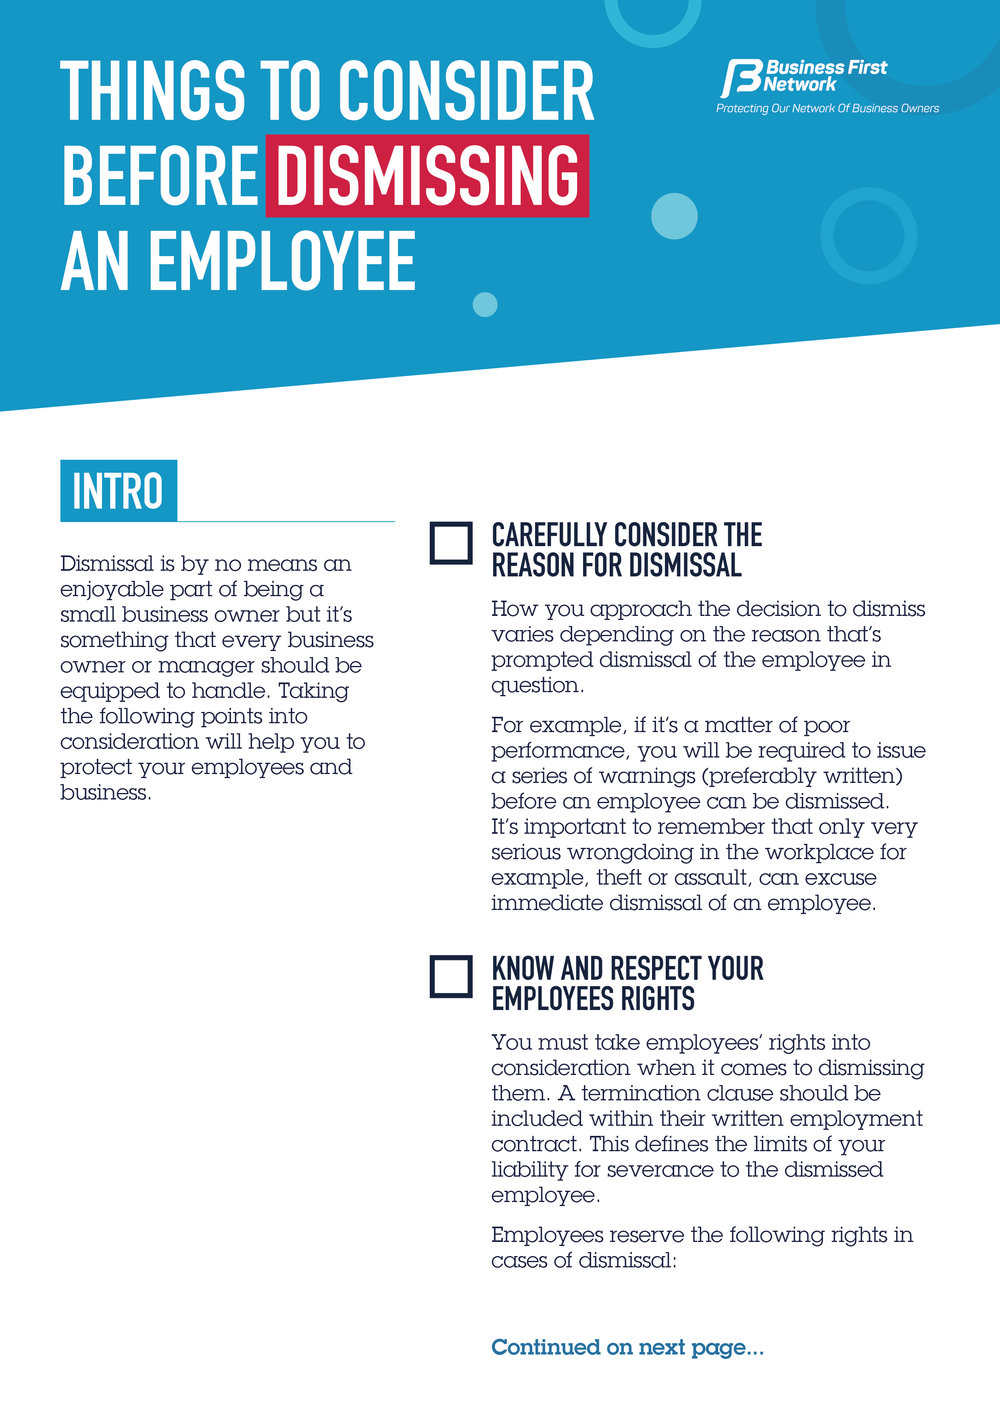 THINGS TO CONSIDER BEFORE DISMISSING  AN EMPLOYEE.jpg